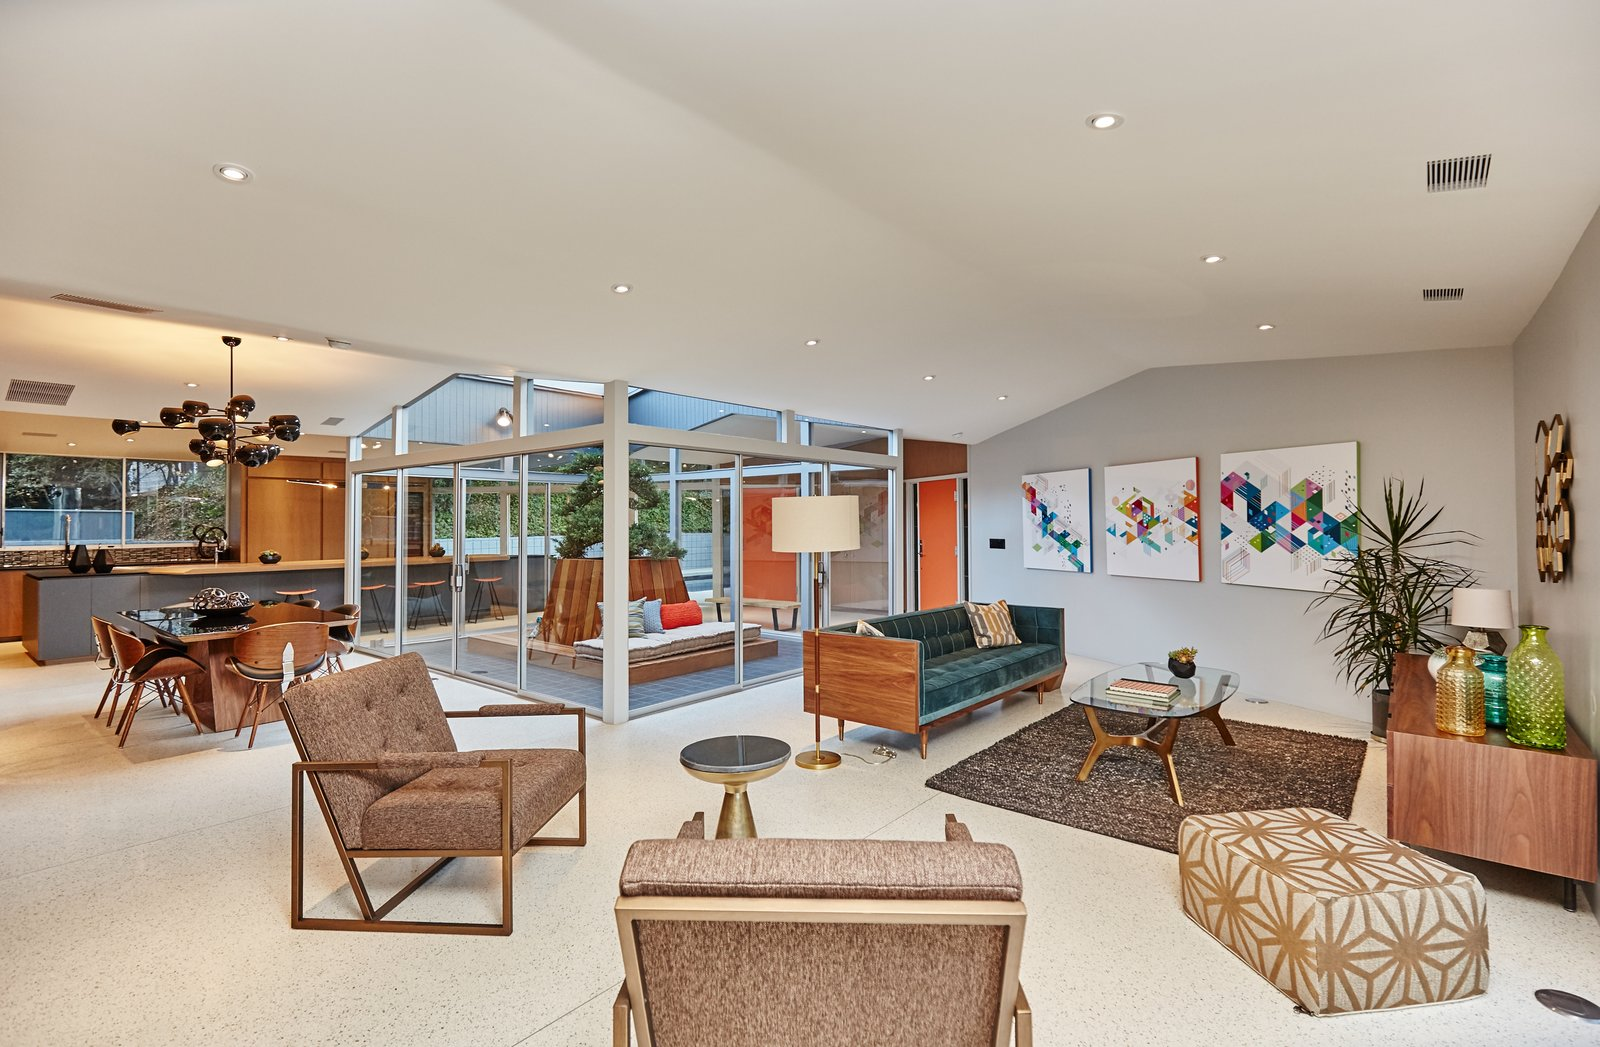 Photo 1 of 10 in A Hexagonal Midcentury Residence in Southern California Offered at $2.89M